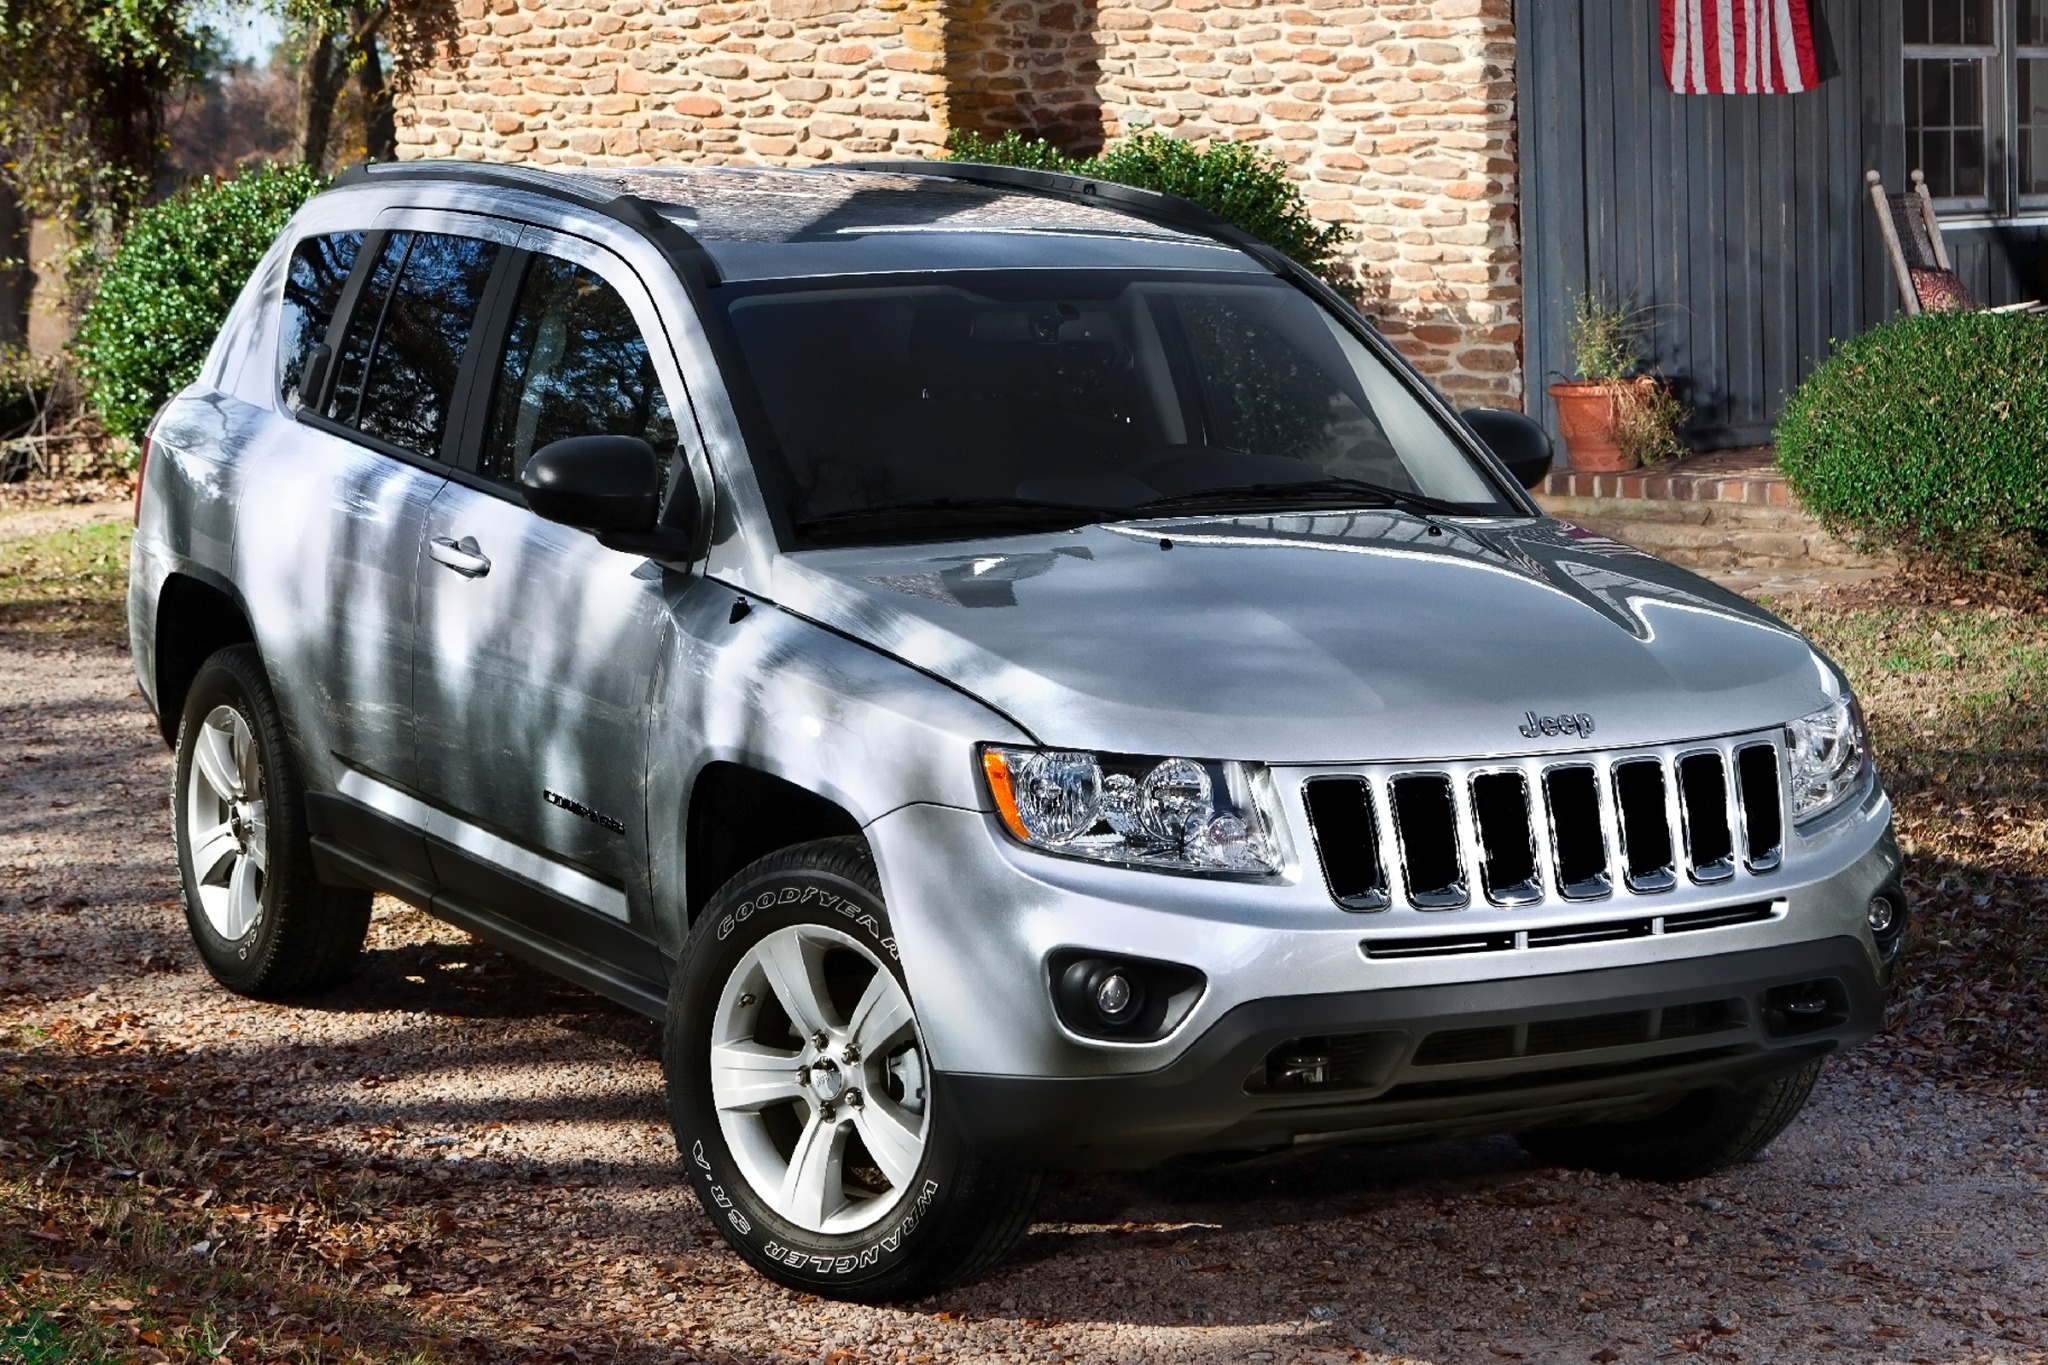 2015 Jeep Compass Sport FWD VIN Number Search